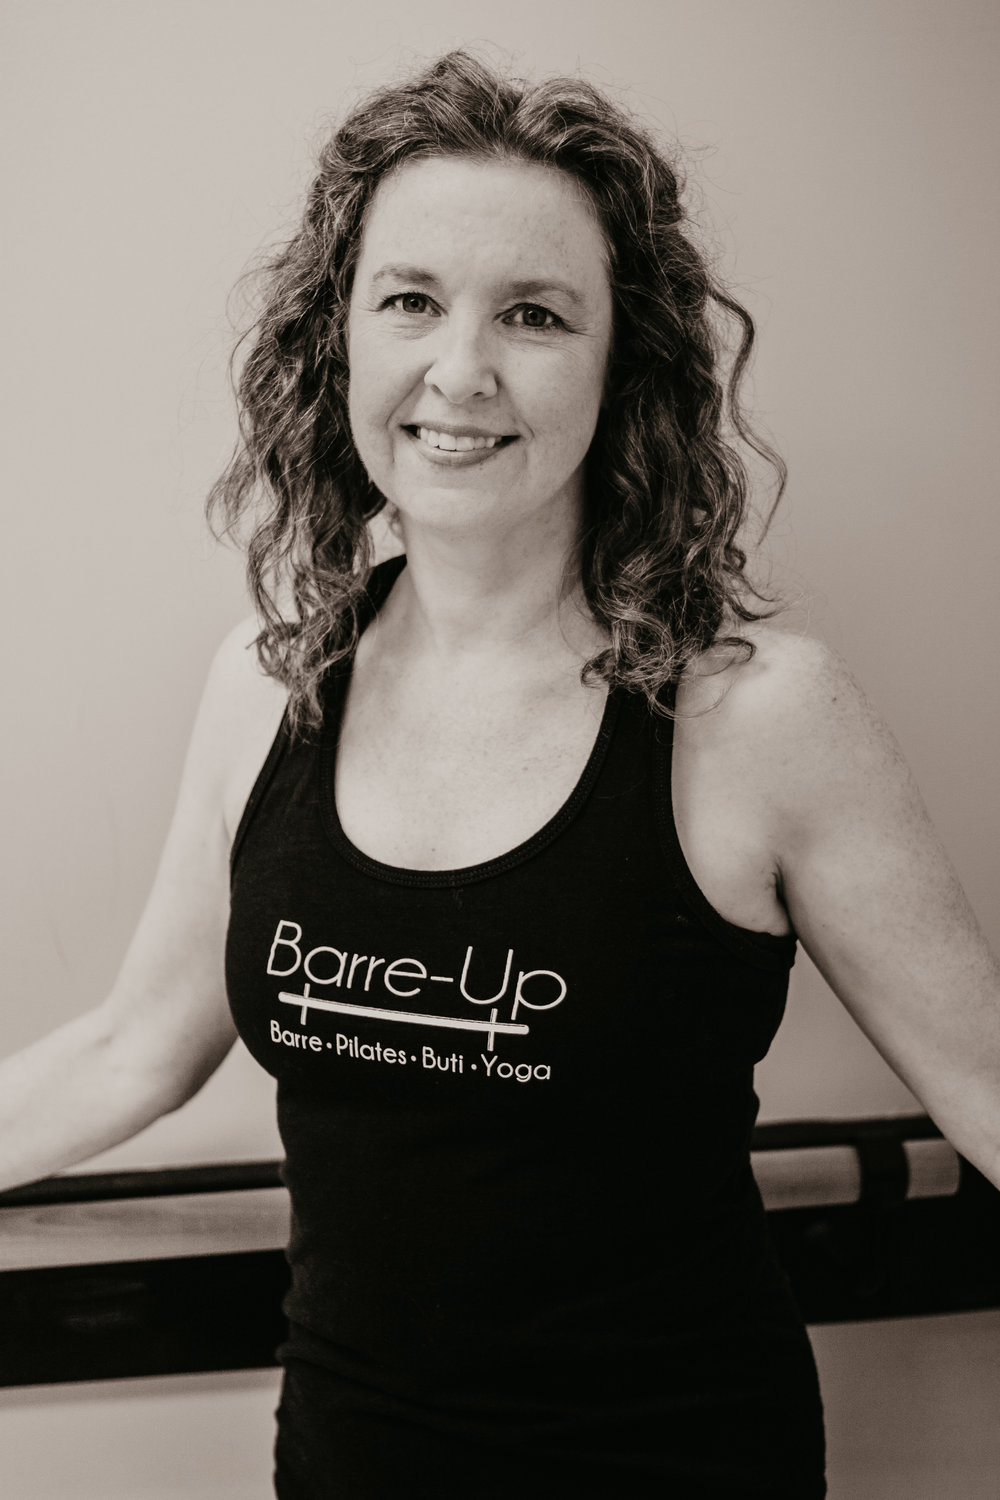 Orla S. - Orla teaches barre and deep tissue therapy ball massage at Barre Up. She loves the precisely focused movements and mind-body connection of these practices, and how doing them diligently over time — with ever improved form and technique — only makes them more challenging and transformational.In addition to barre and therapy ball massage, she is certified in kundalini yoga and Yoga Tune Up (RYT-300+), Power Pilates Mat I & II, and Little Guru children's yoga. She also keeps active by dancing Argentine tango, swing, salsa and more.